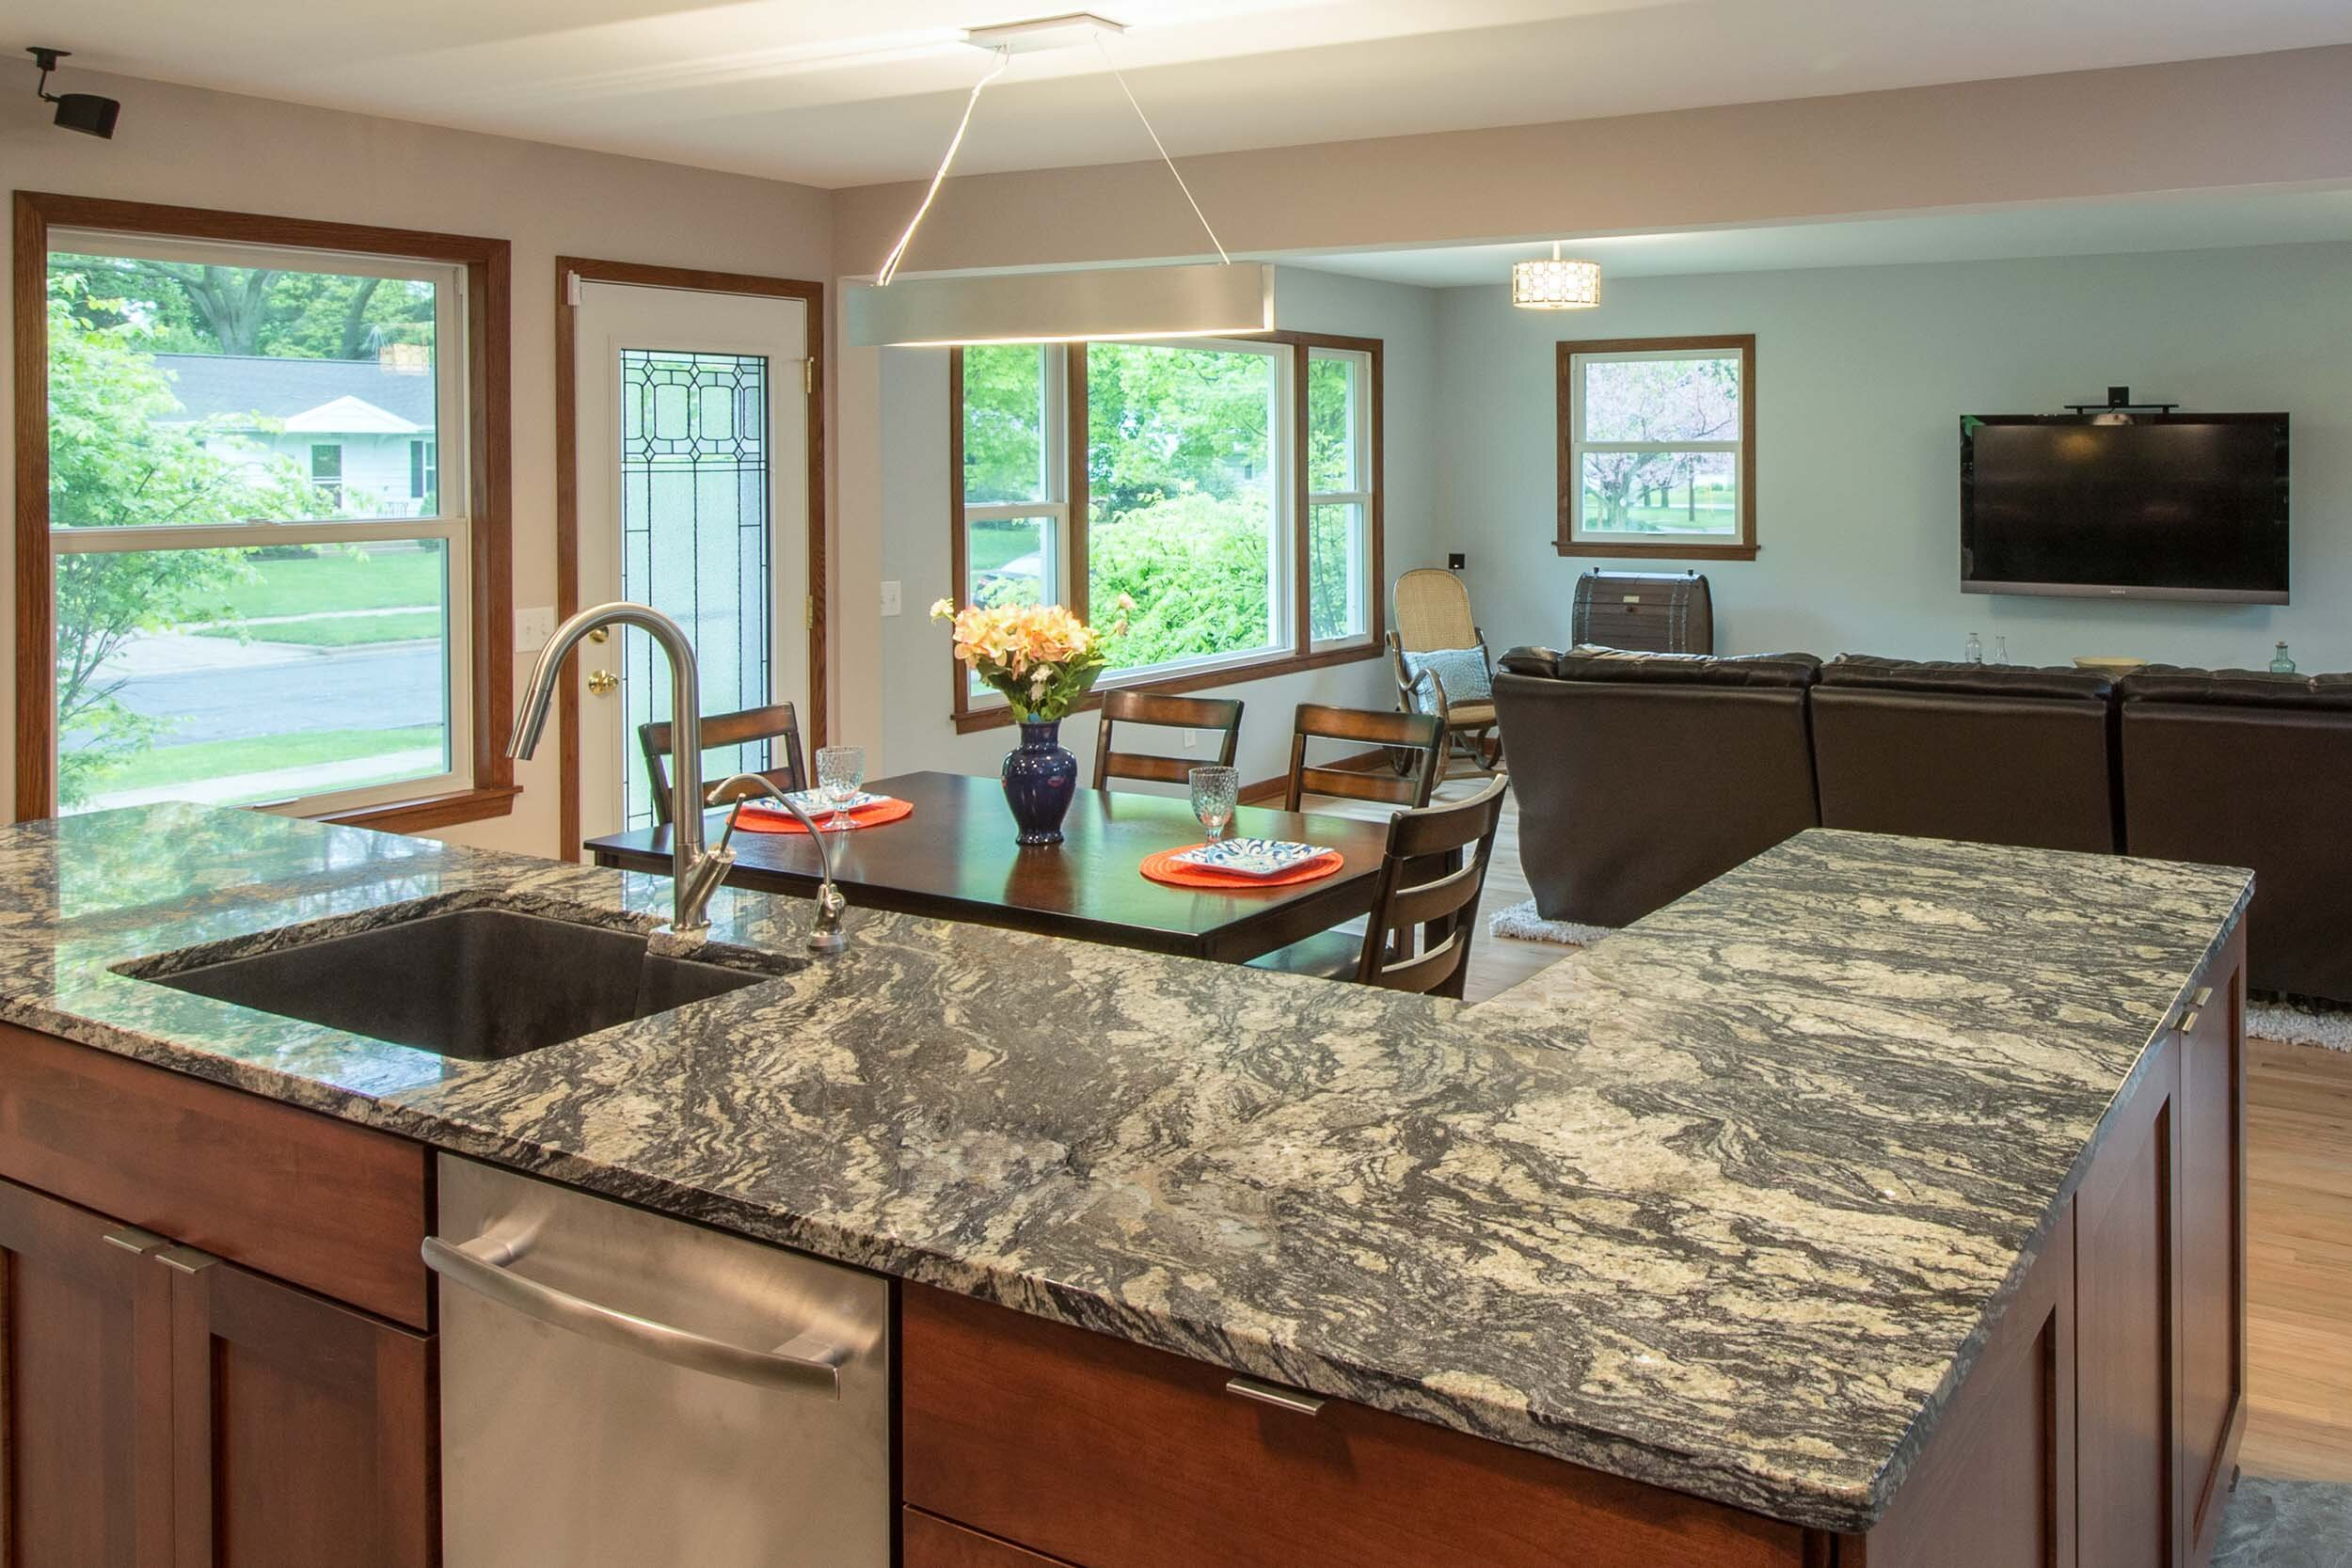 Need More Living Space Consider A Garage Conversion Remodel Degnan Design Build Remodel